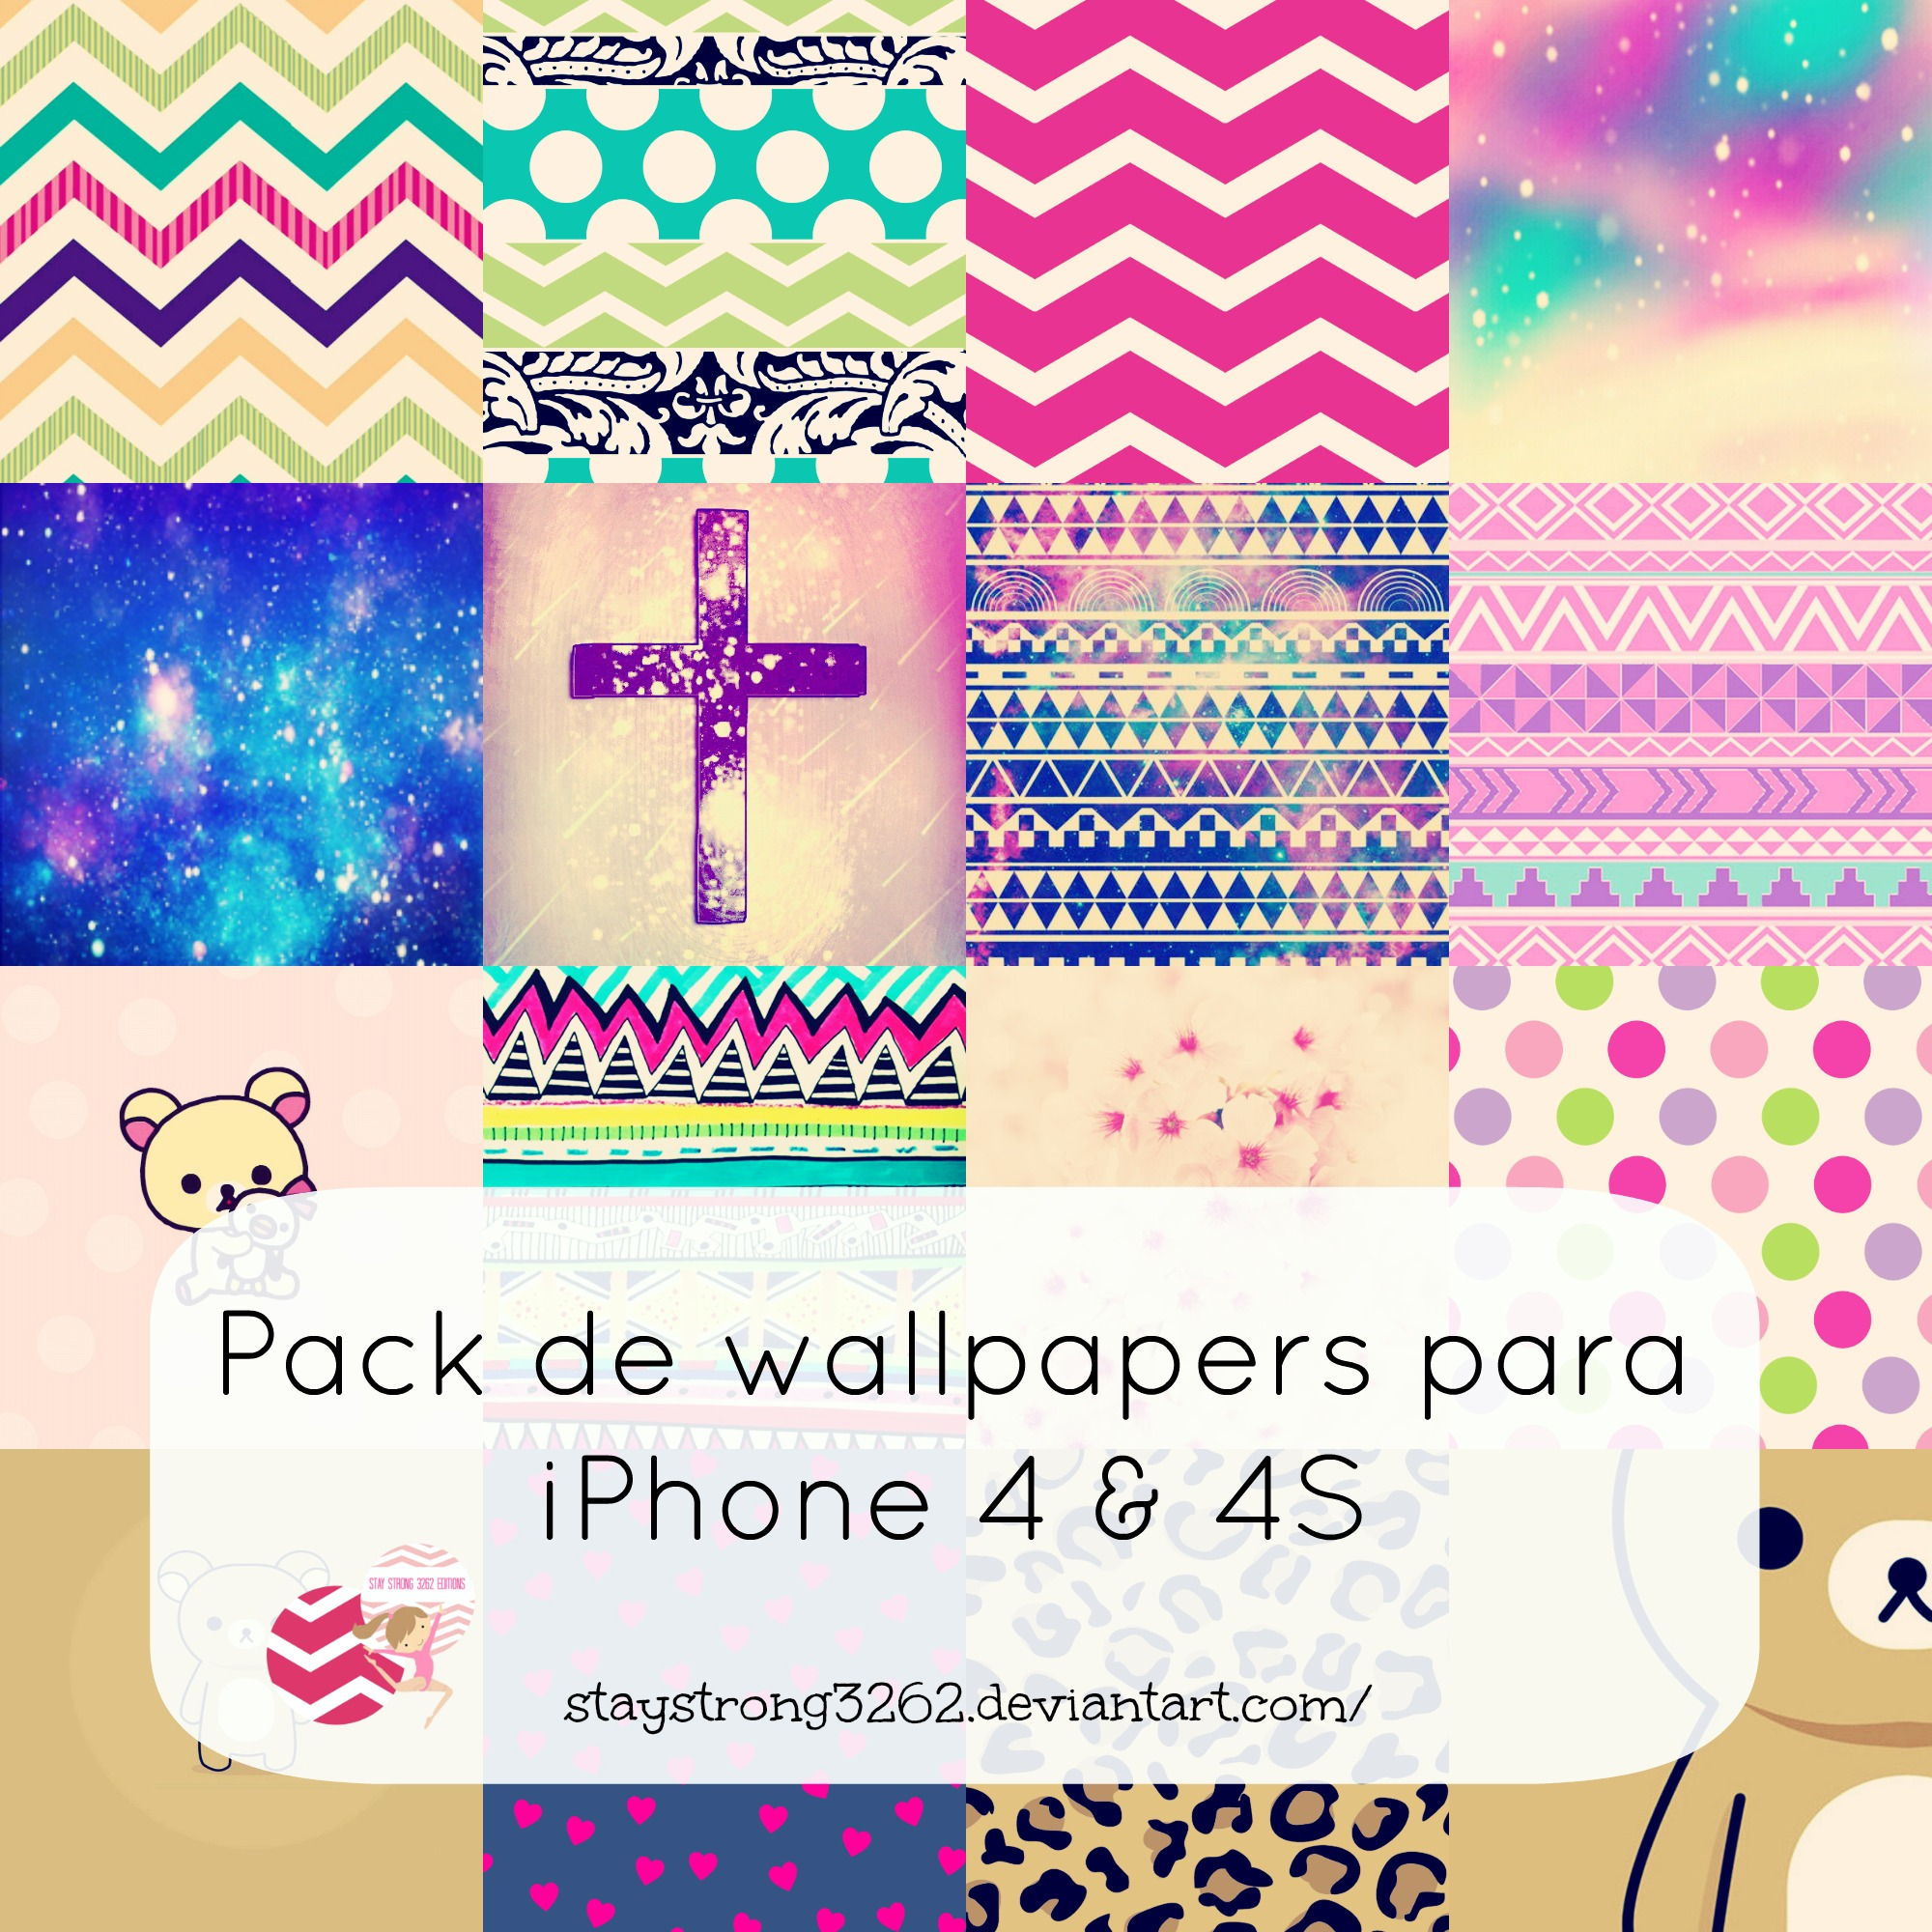 Tumblr wallpaper for iphone 4 pack de 140 wallpapers para iphone 4 y 4s by